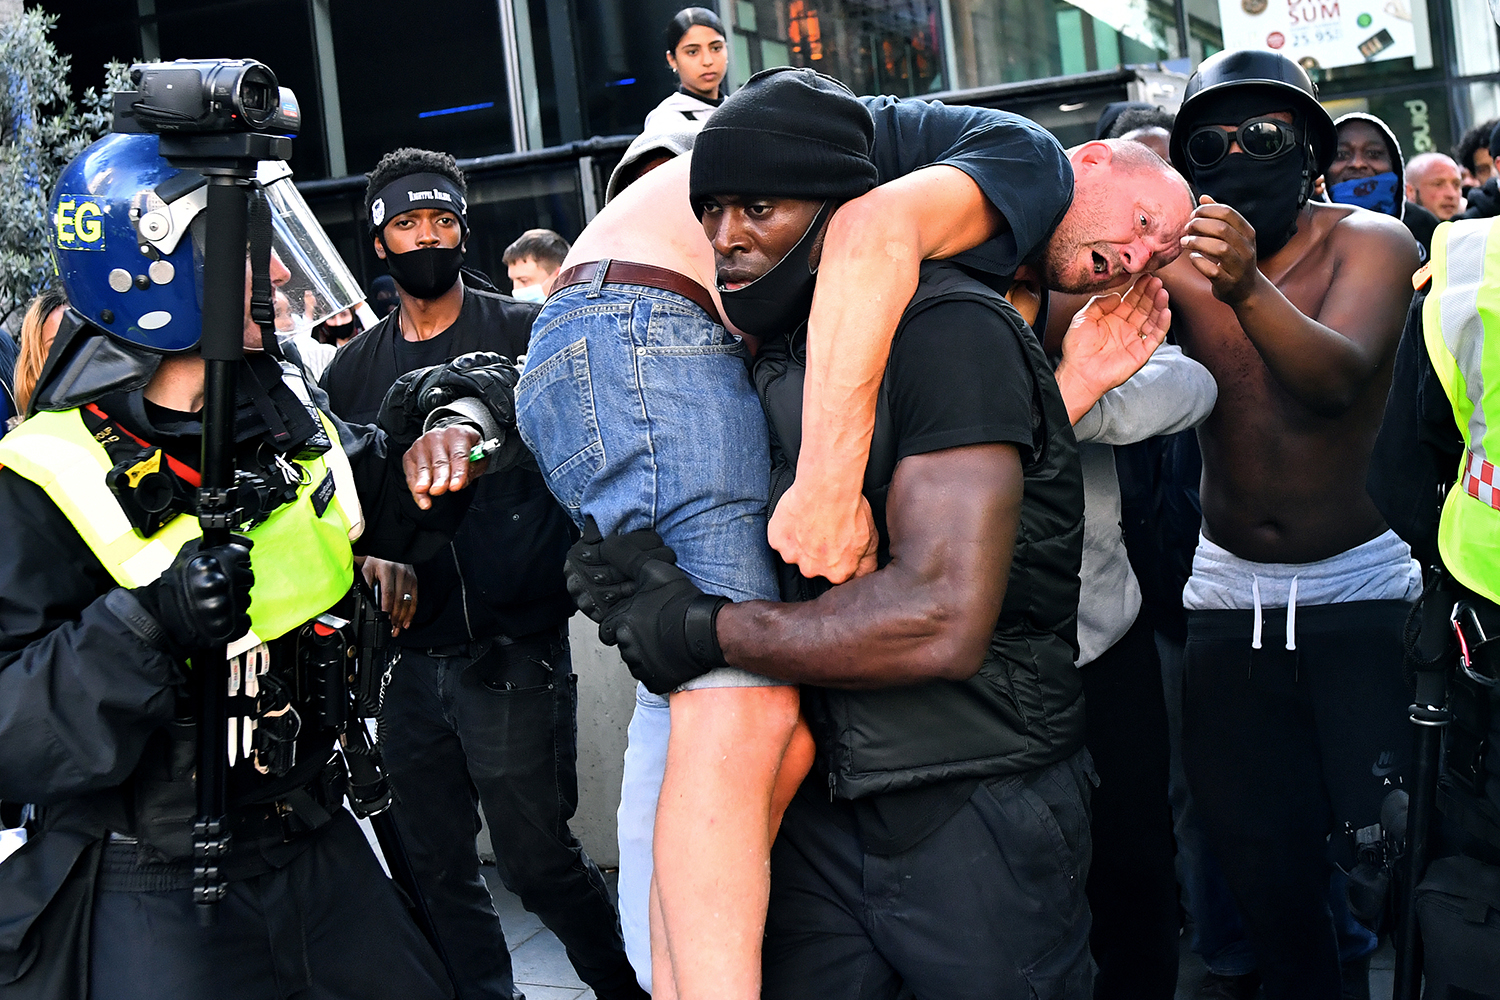 Patrick Hutchinson, a demonstrator participating in a Black Lives Matter protest in London, carries a suspected far-right counterprotester who was injured to safety near Waterloo station June 13. Dylan Martinez/REUTERS